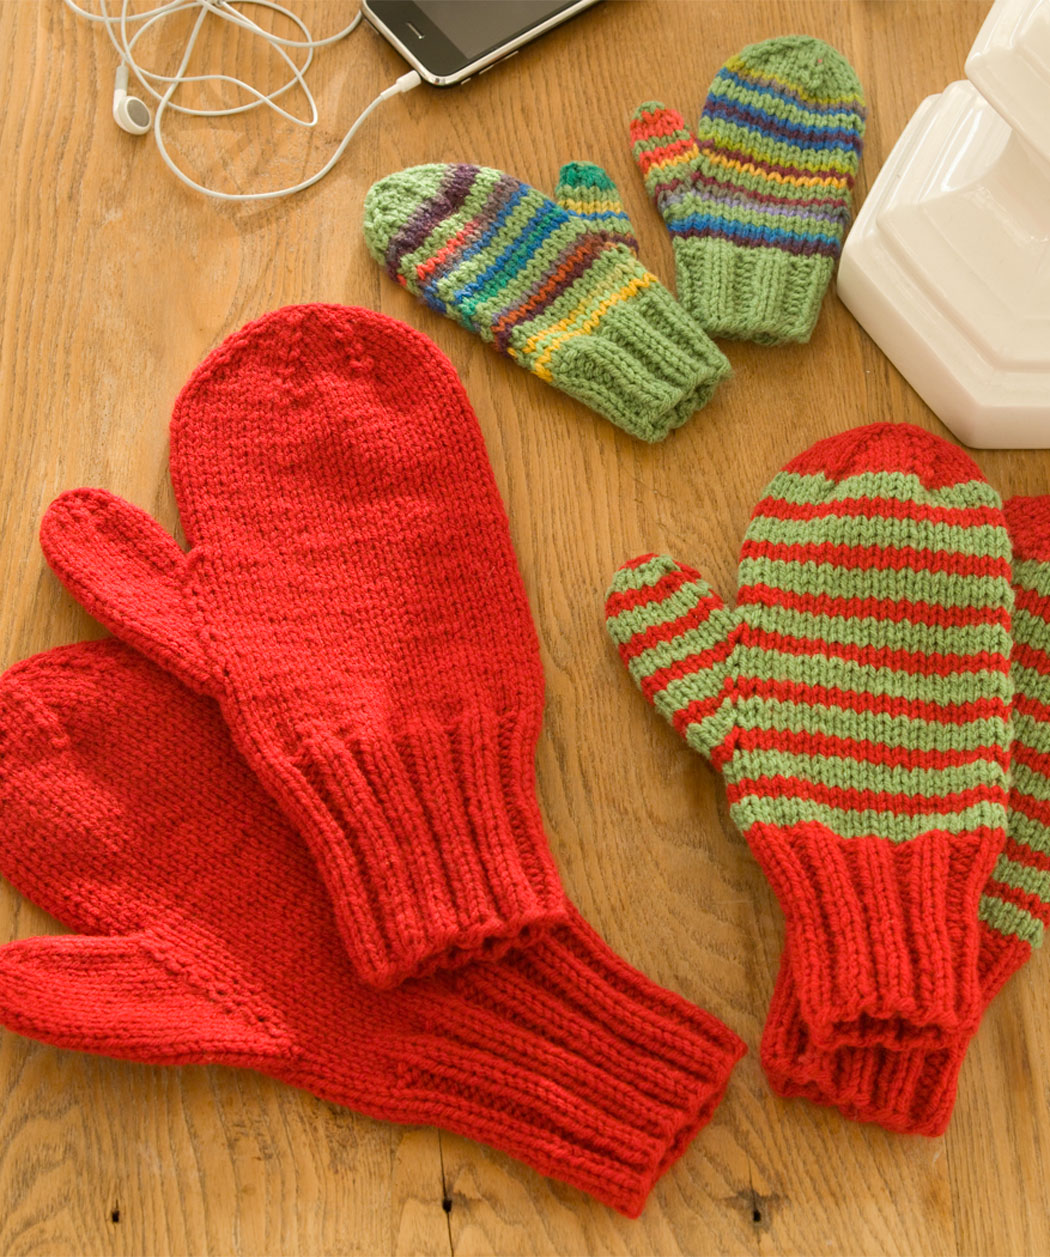 Mitten Knitting Patterns | A Knitting Blog